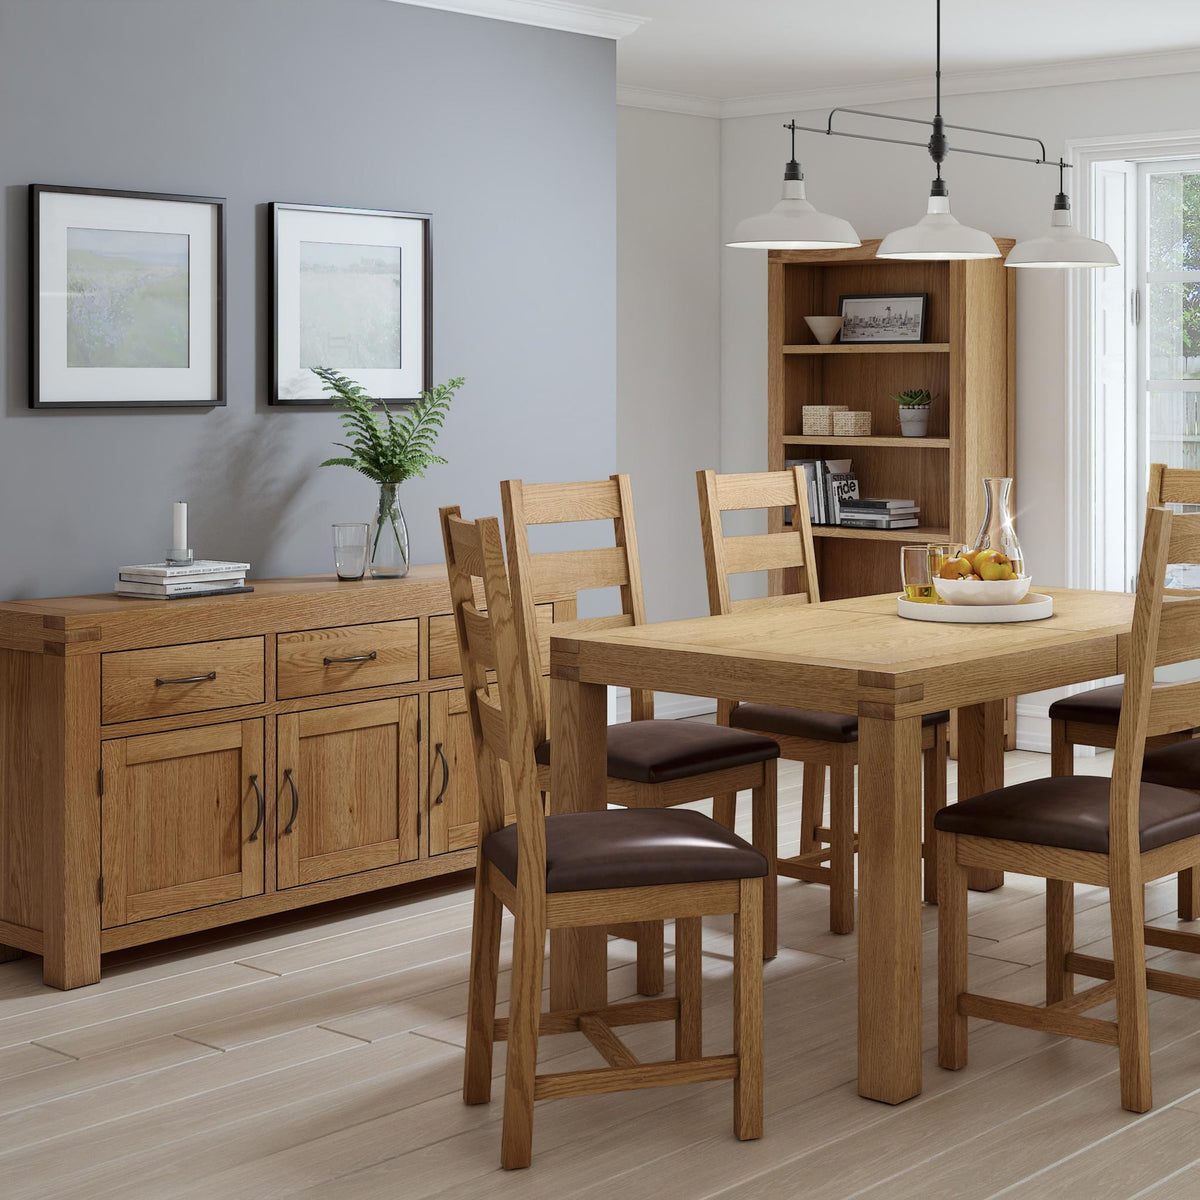 The Abbey Grande Oak Large Sideboard - Lifestyle